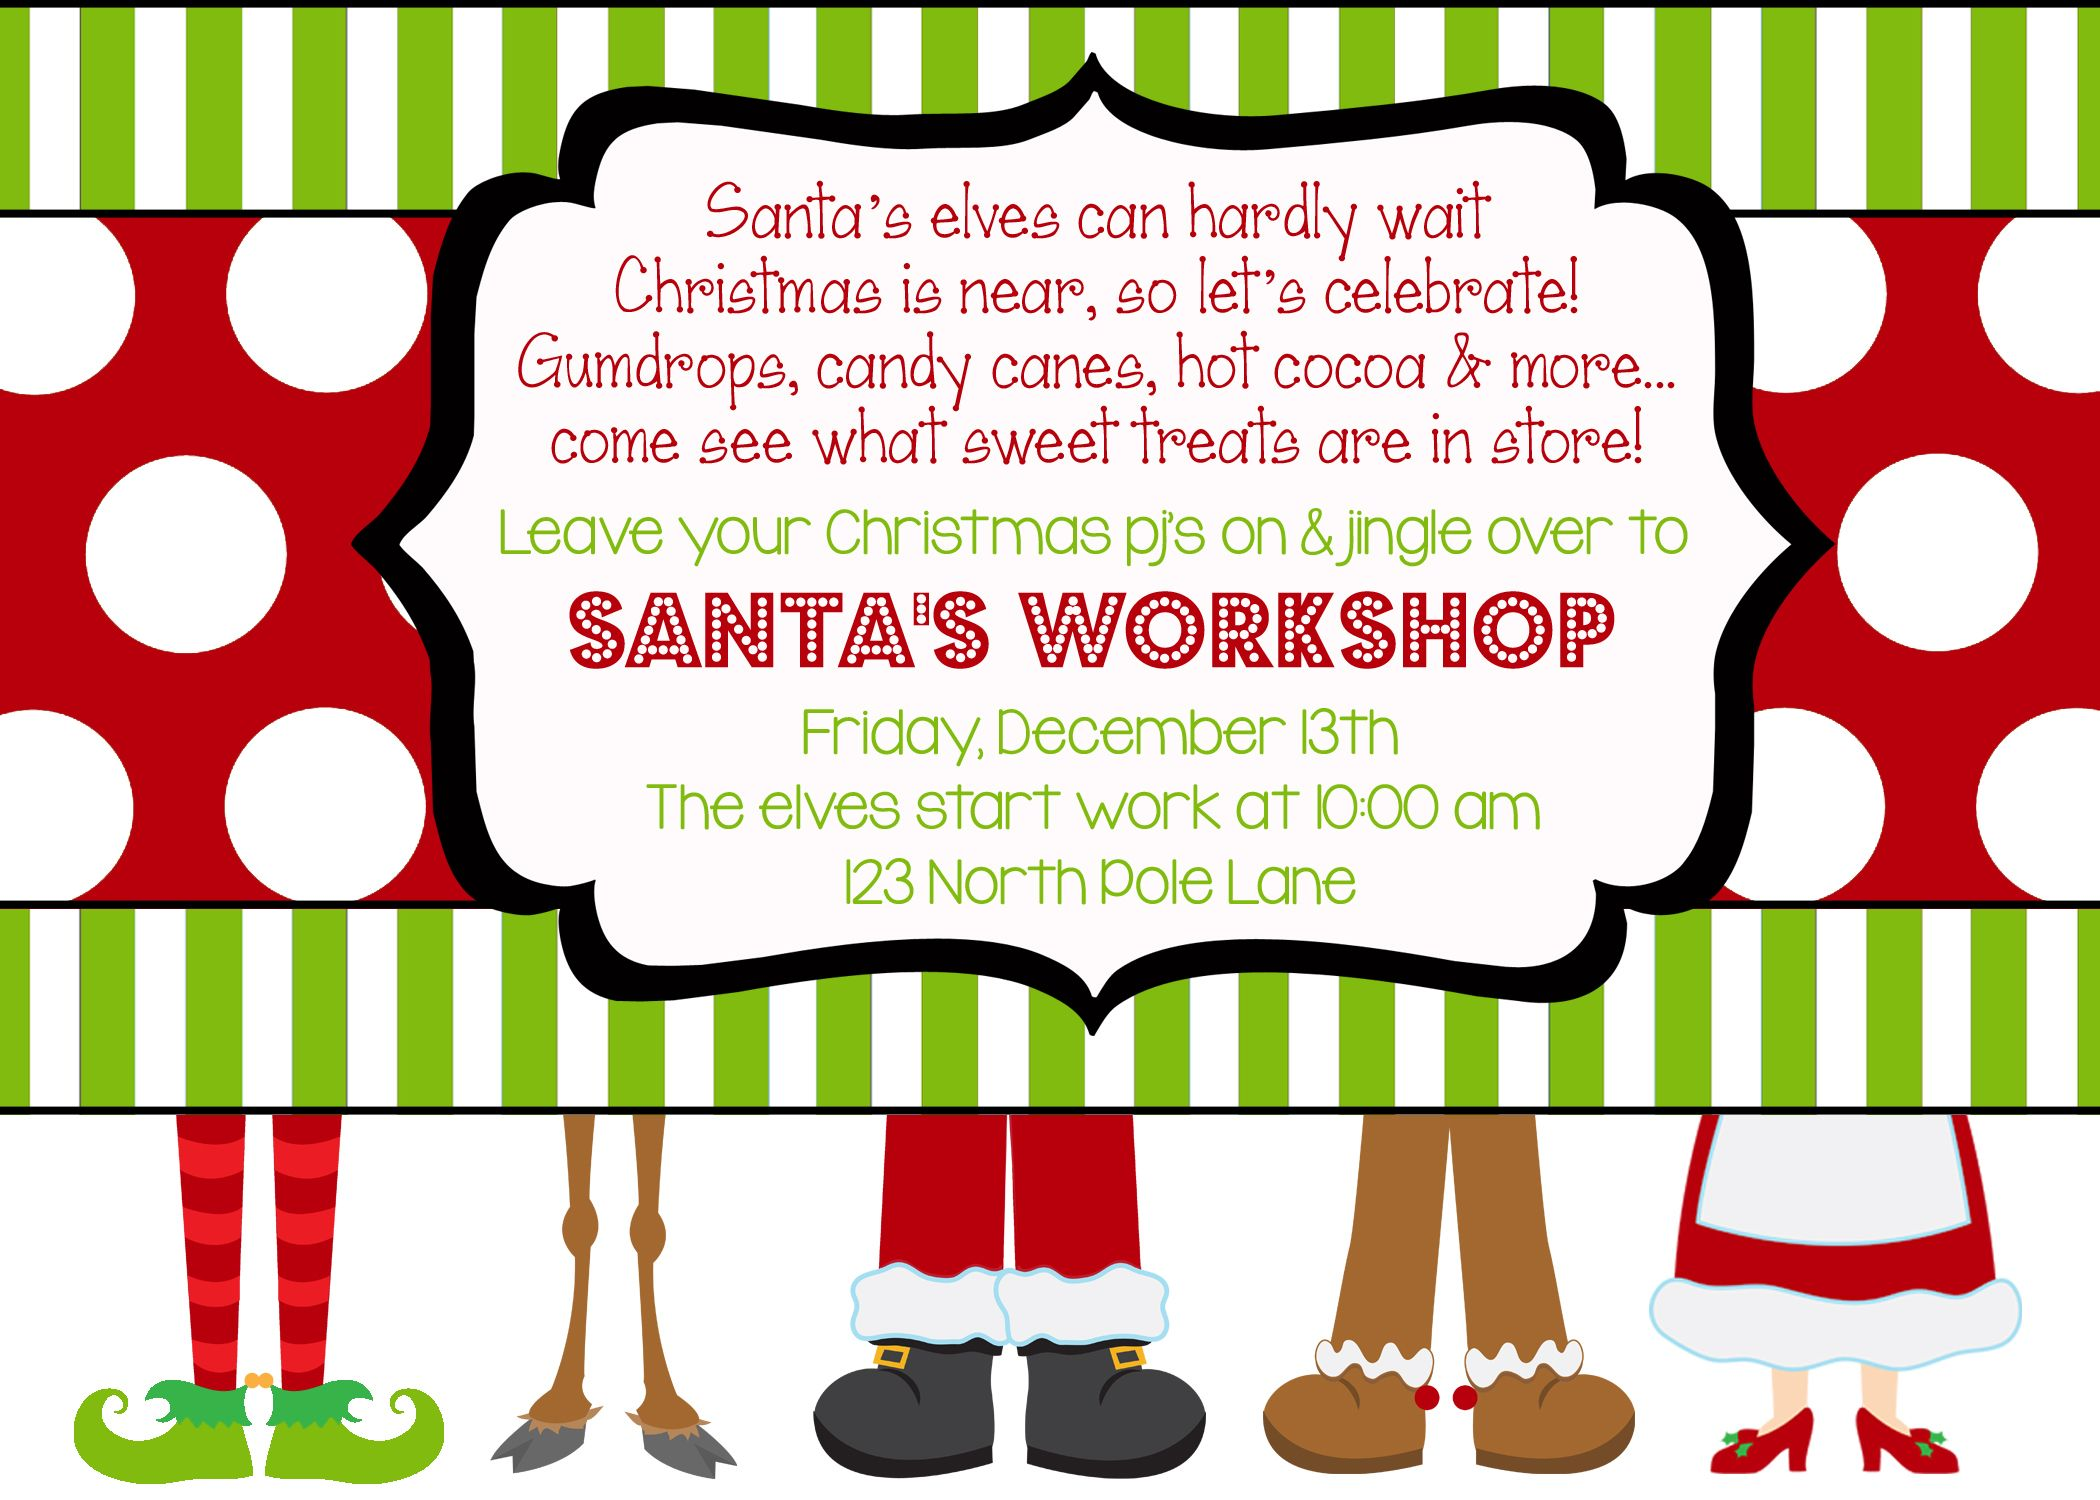 Santas workshop party invitation holiday invitations santas workshop party invitation stopboris Image collections